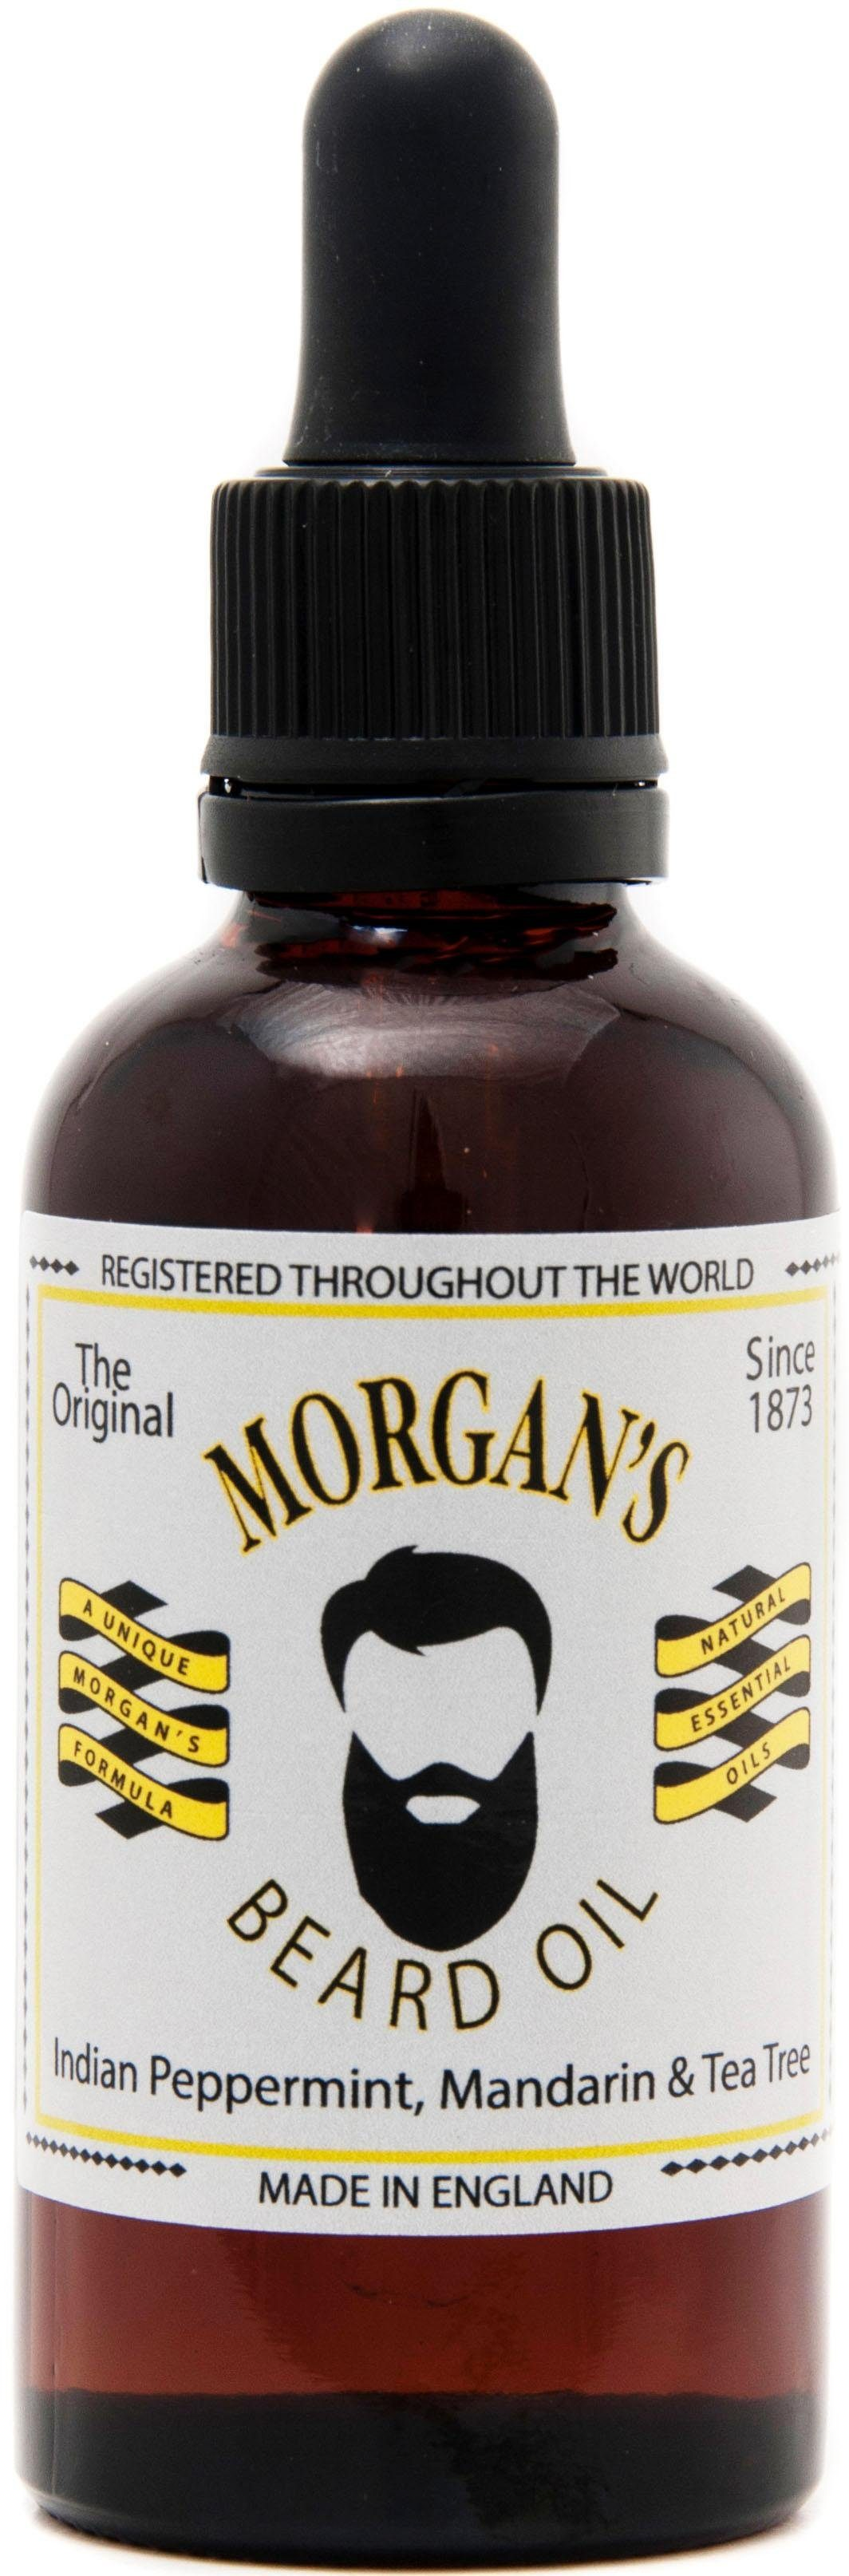 Morgan's Bartöl »Beard Oil«